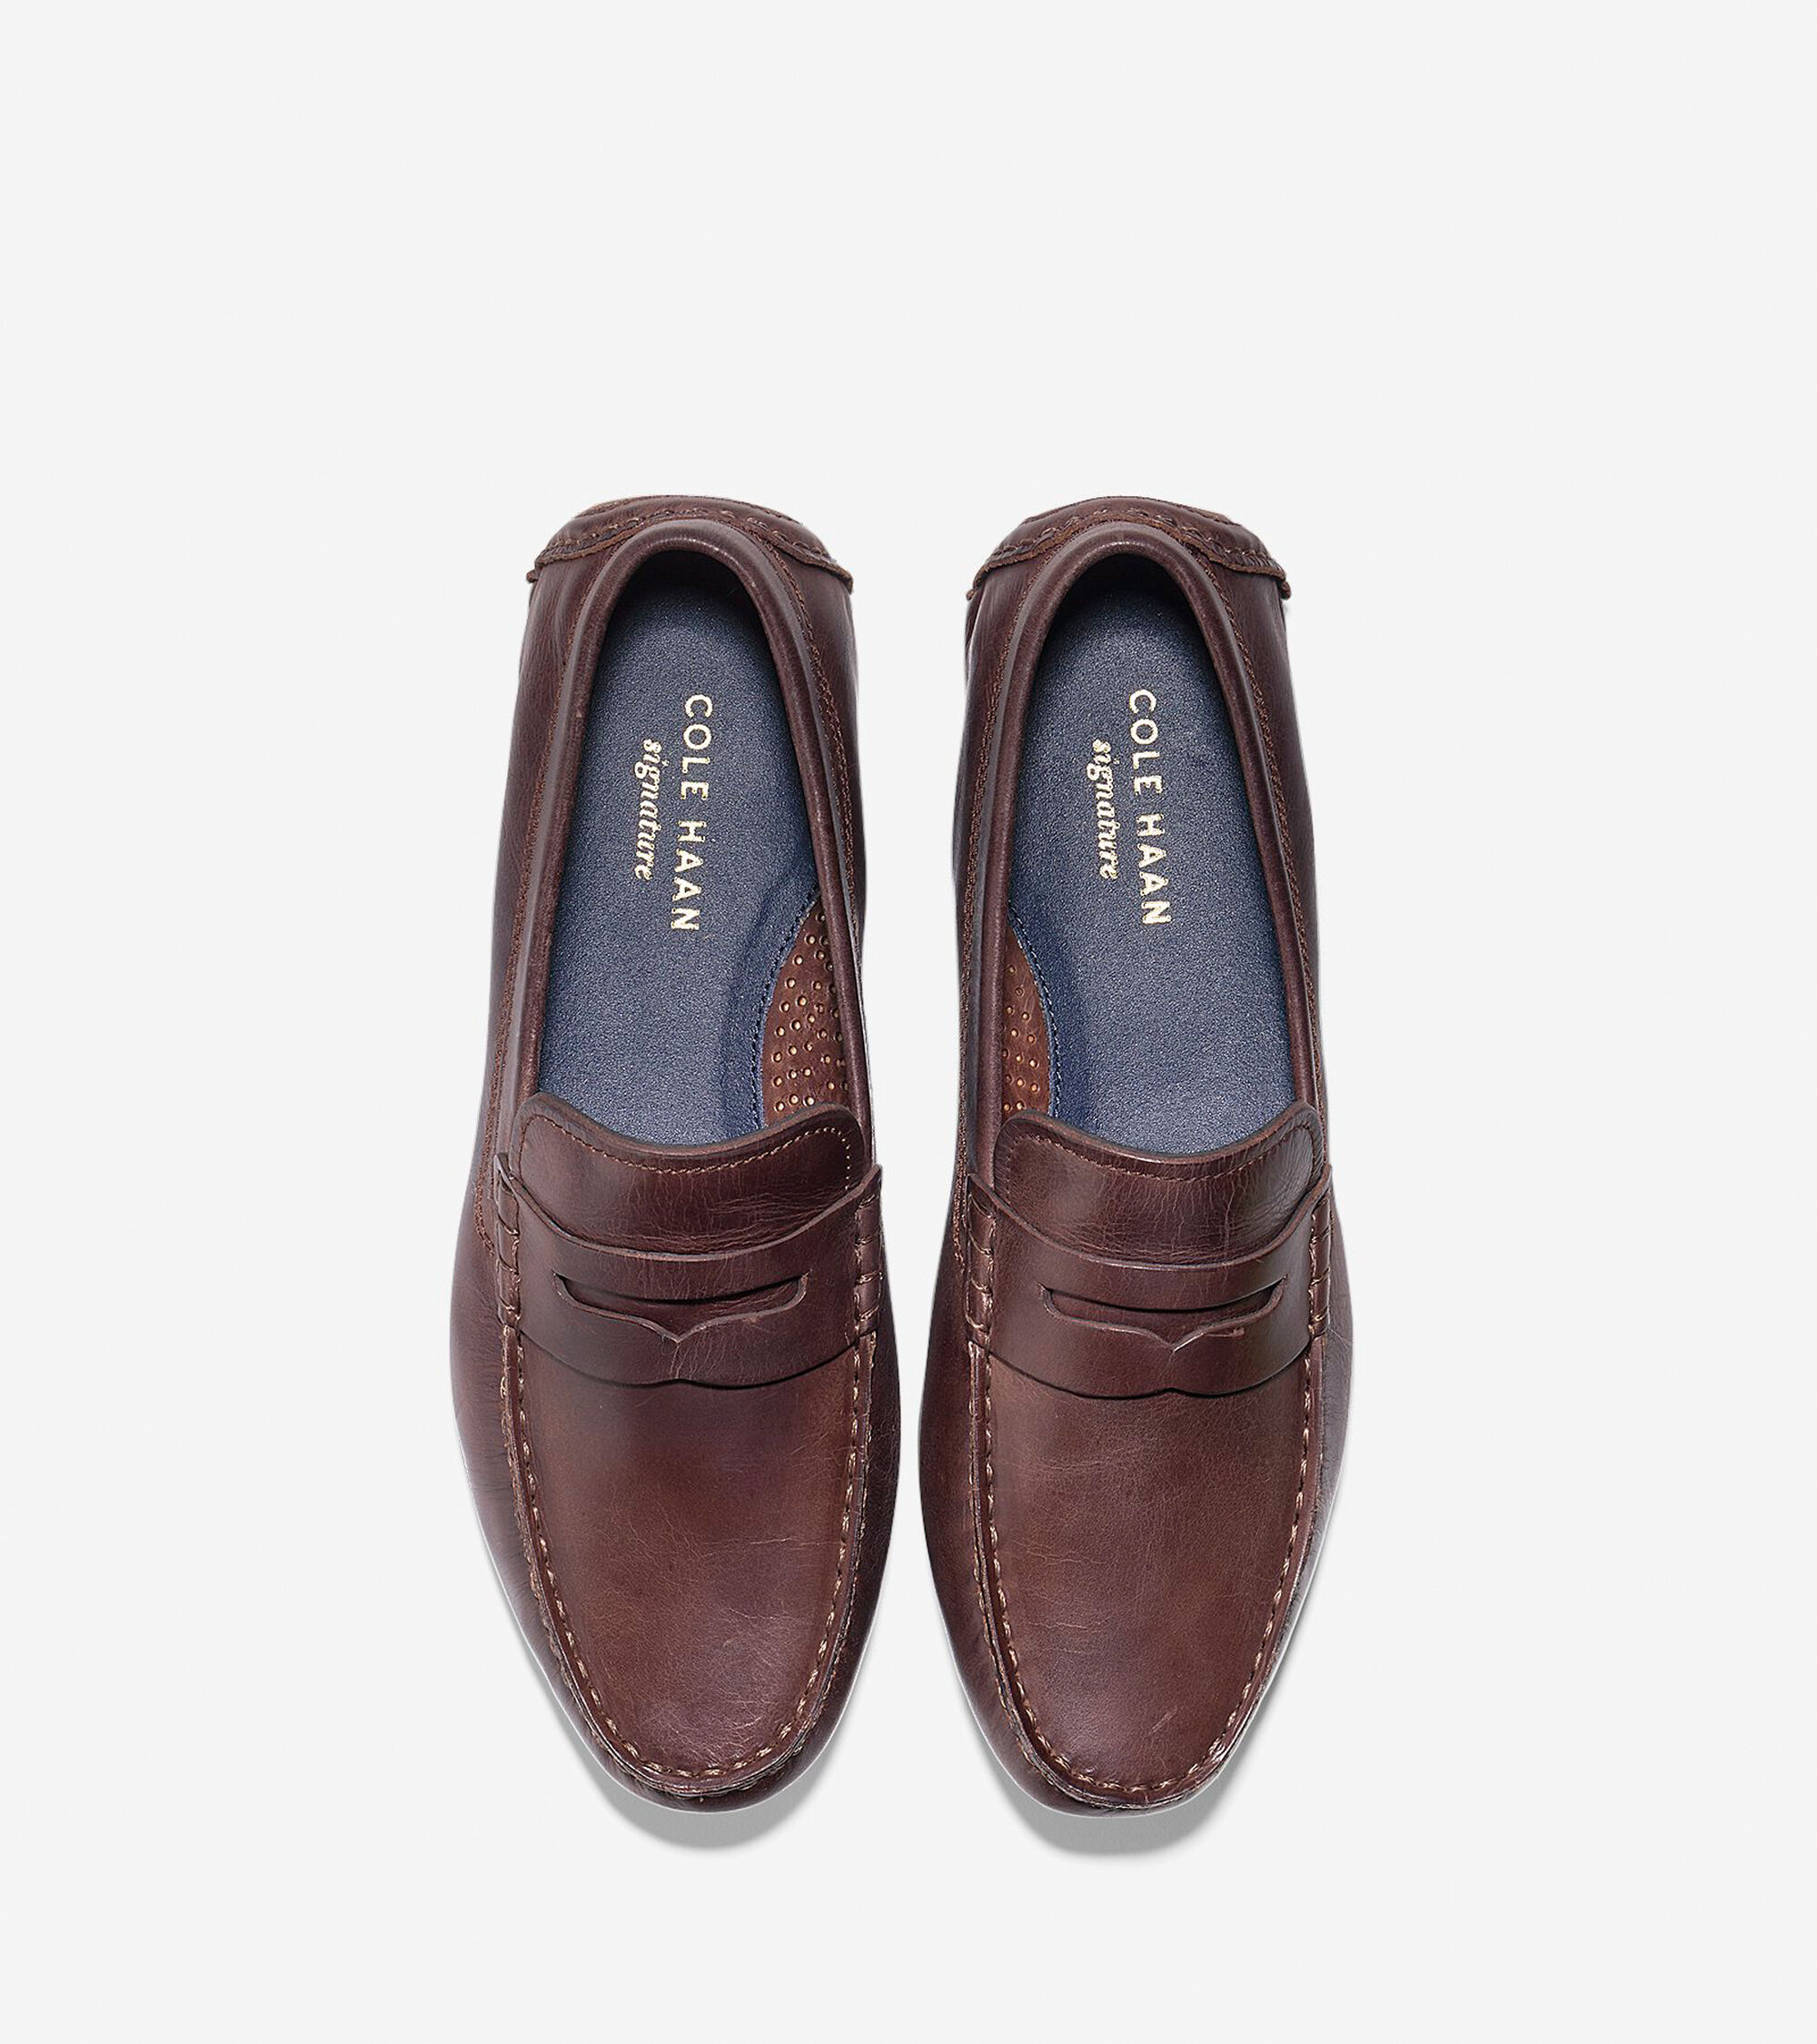 5eb7281ea6e Kelson Penny Loafers in British Tan   Mens Shoes